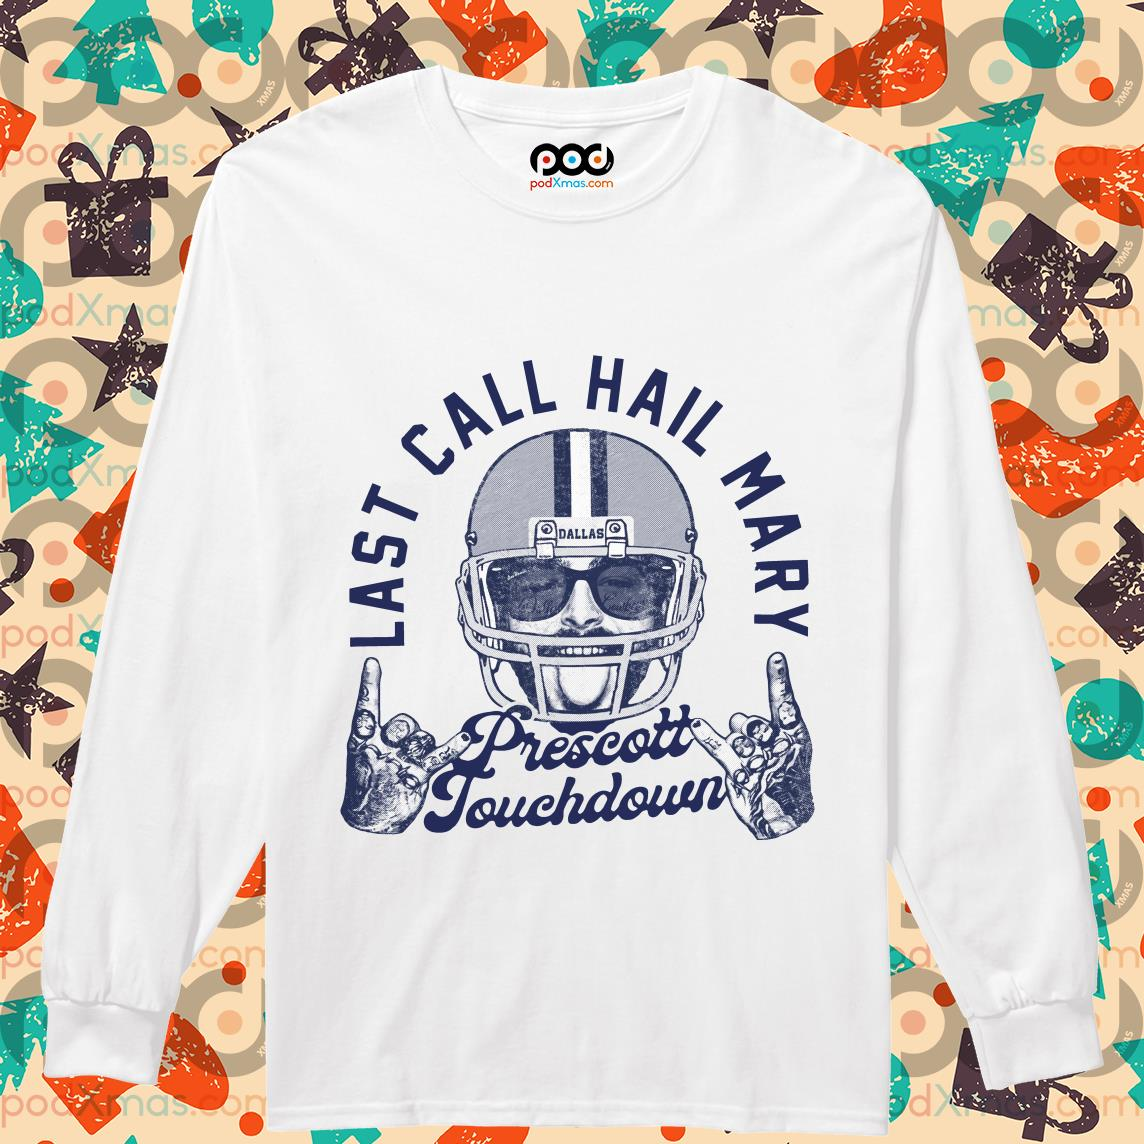 Post Malone Last call hail mary prescott touchdown longsleeved